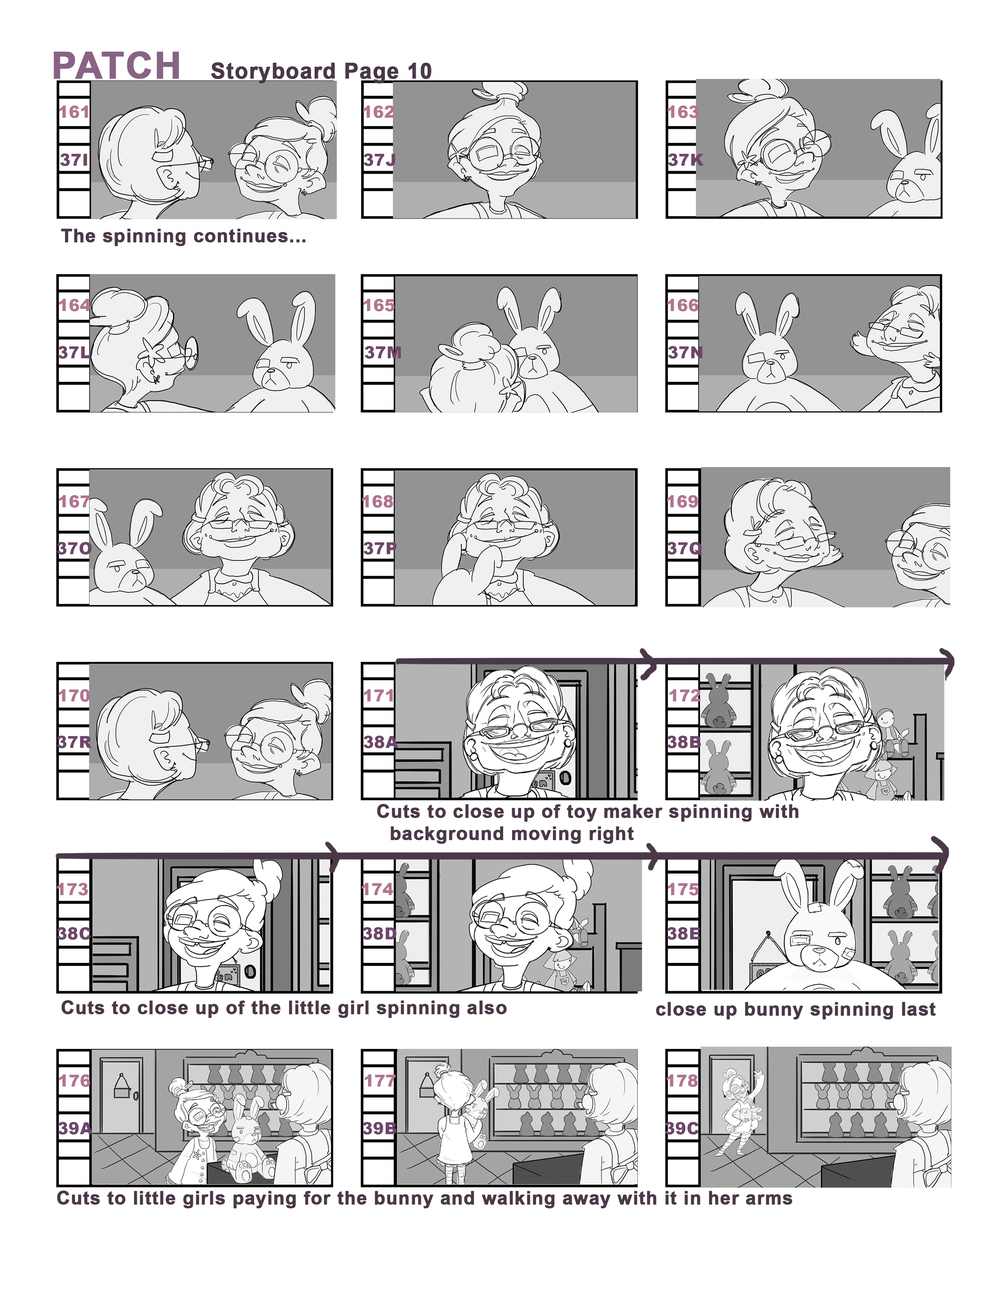 PATCH_storyboards_FINAL_010.jpg